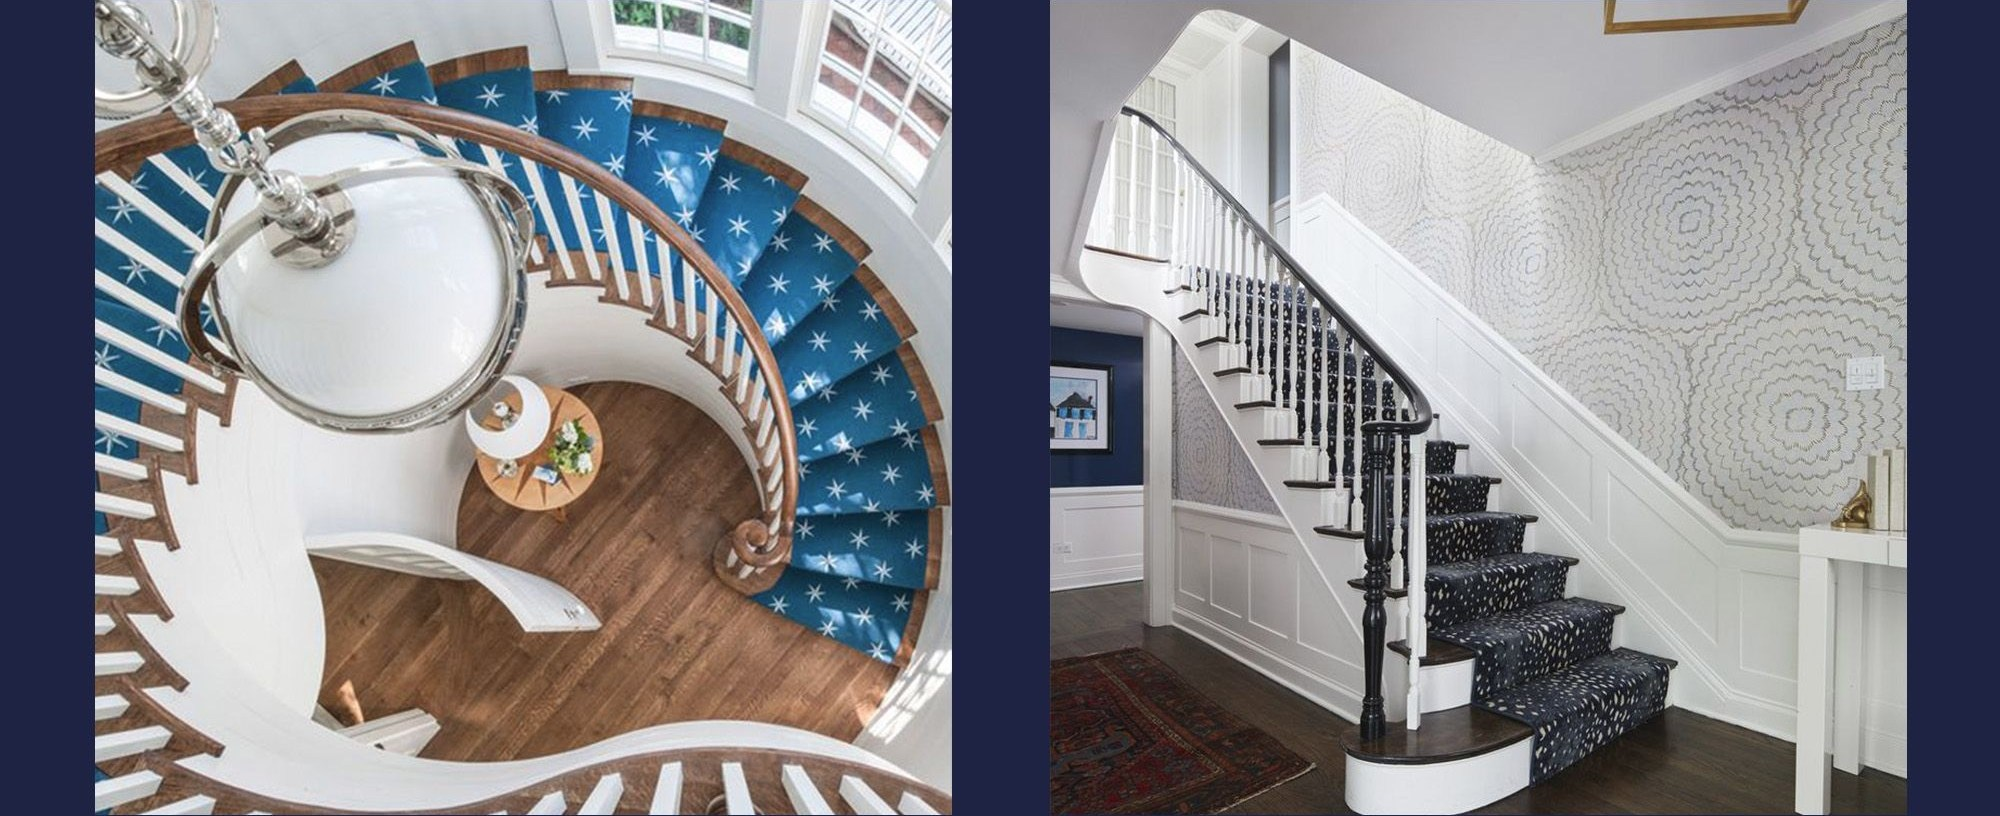 25 Stunning Carpeted Staircase Ideas Most Beautiful Staircase | Carpet For Bedrooms And Stairs | Grey | Carpet Runner Ideas | Stair Railing | Rugs | Staircase Design